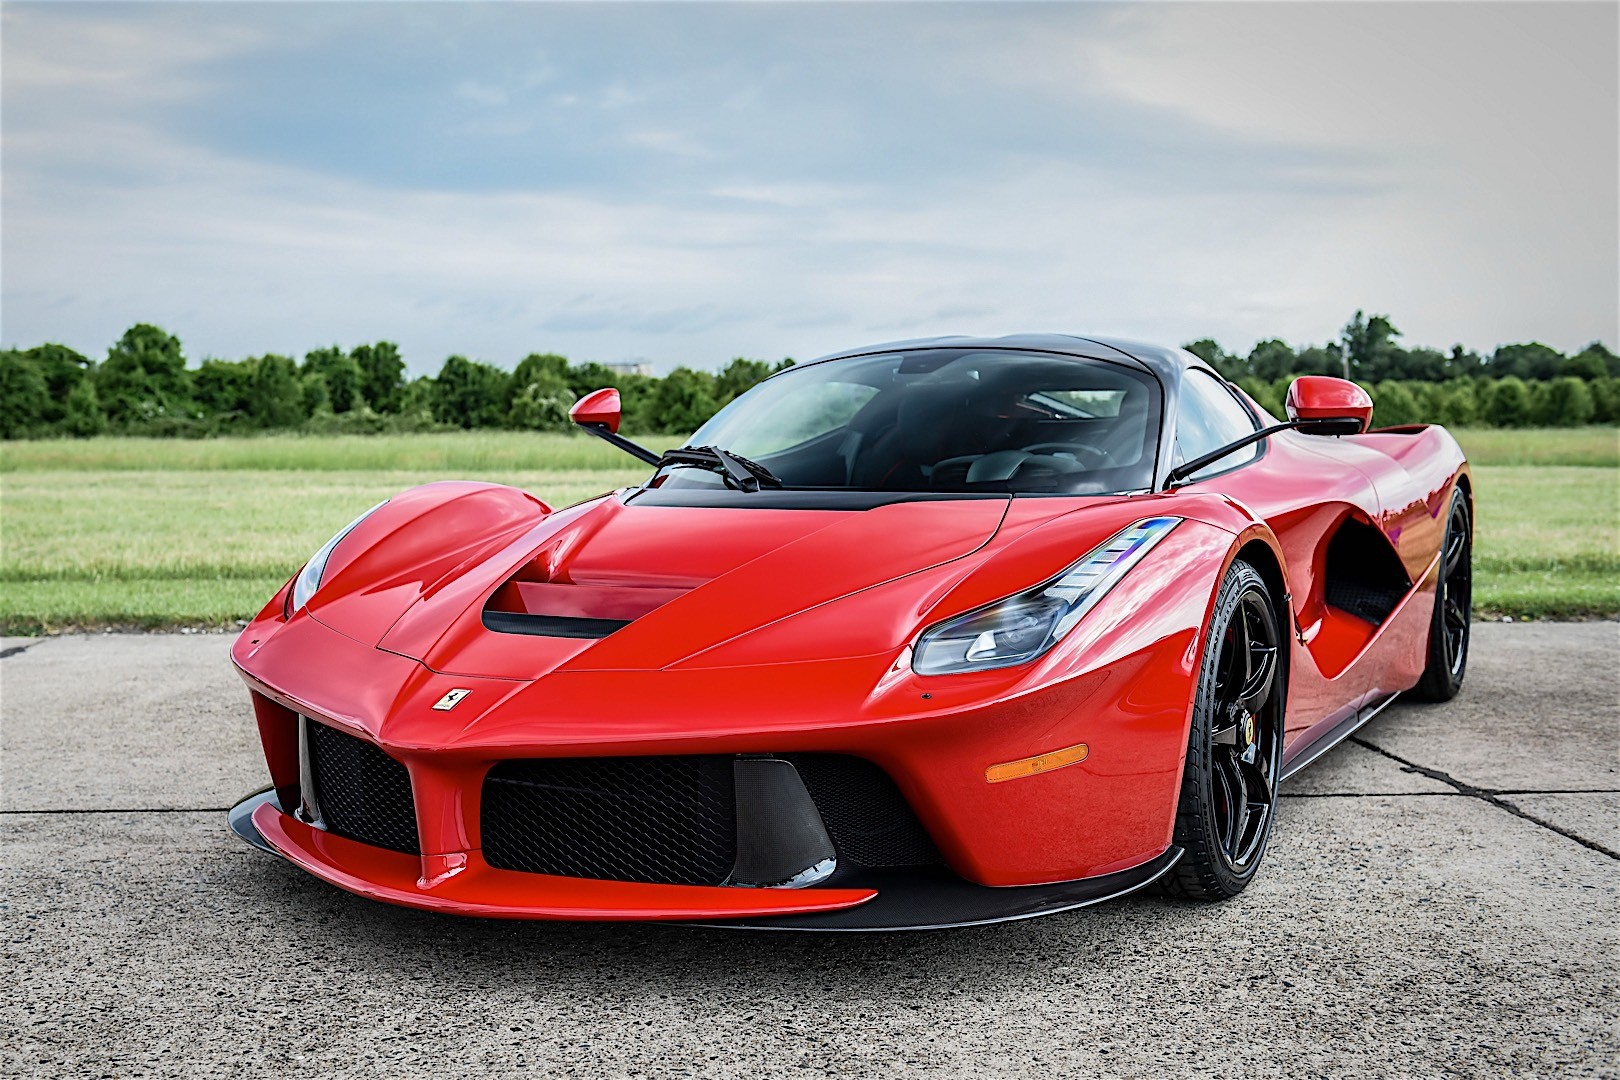 ferrari laferrari specs photos 2013 2014 2015 autoevolution. Black Bedroom Furniture Sets. Home Design Ideas